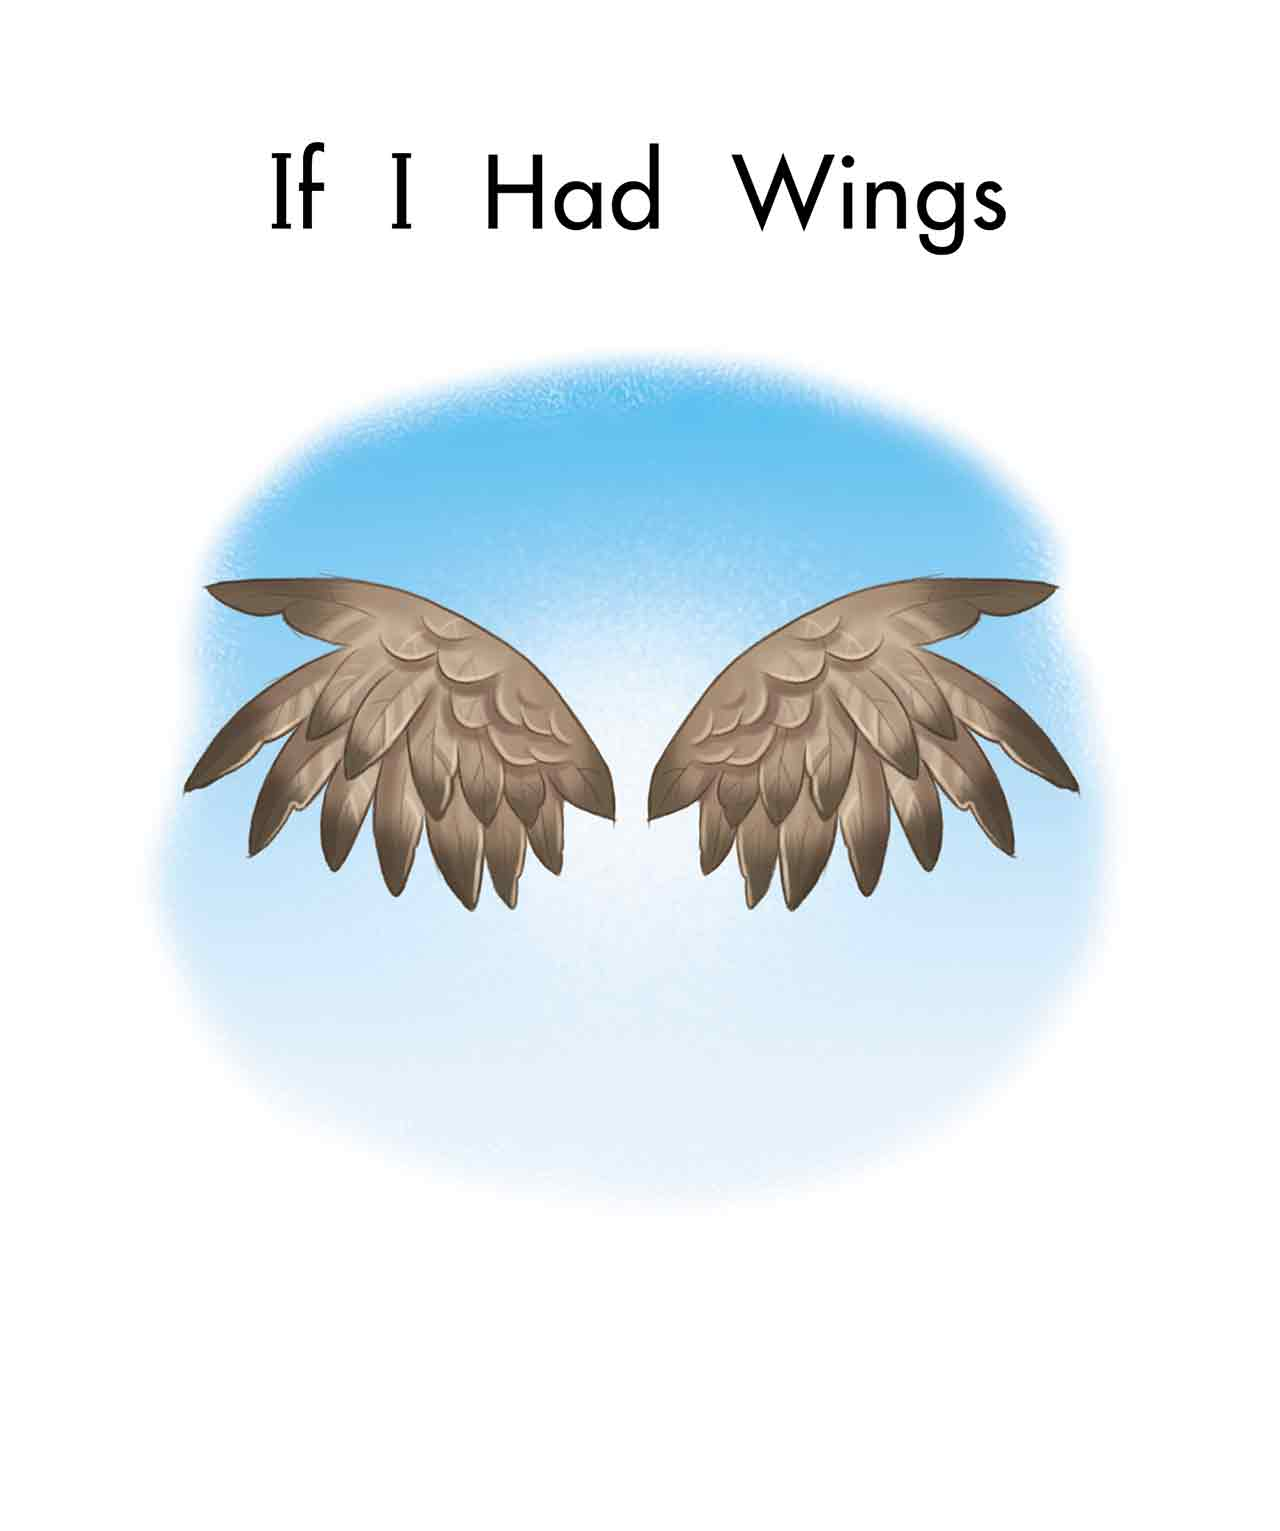 paragraph on if i had wings